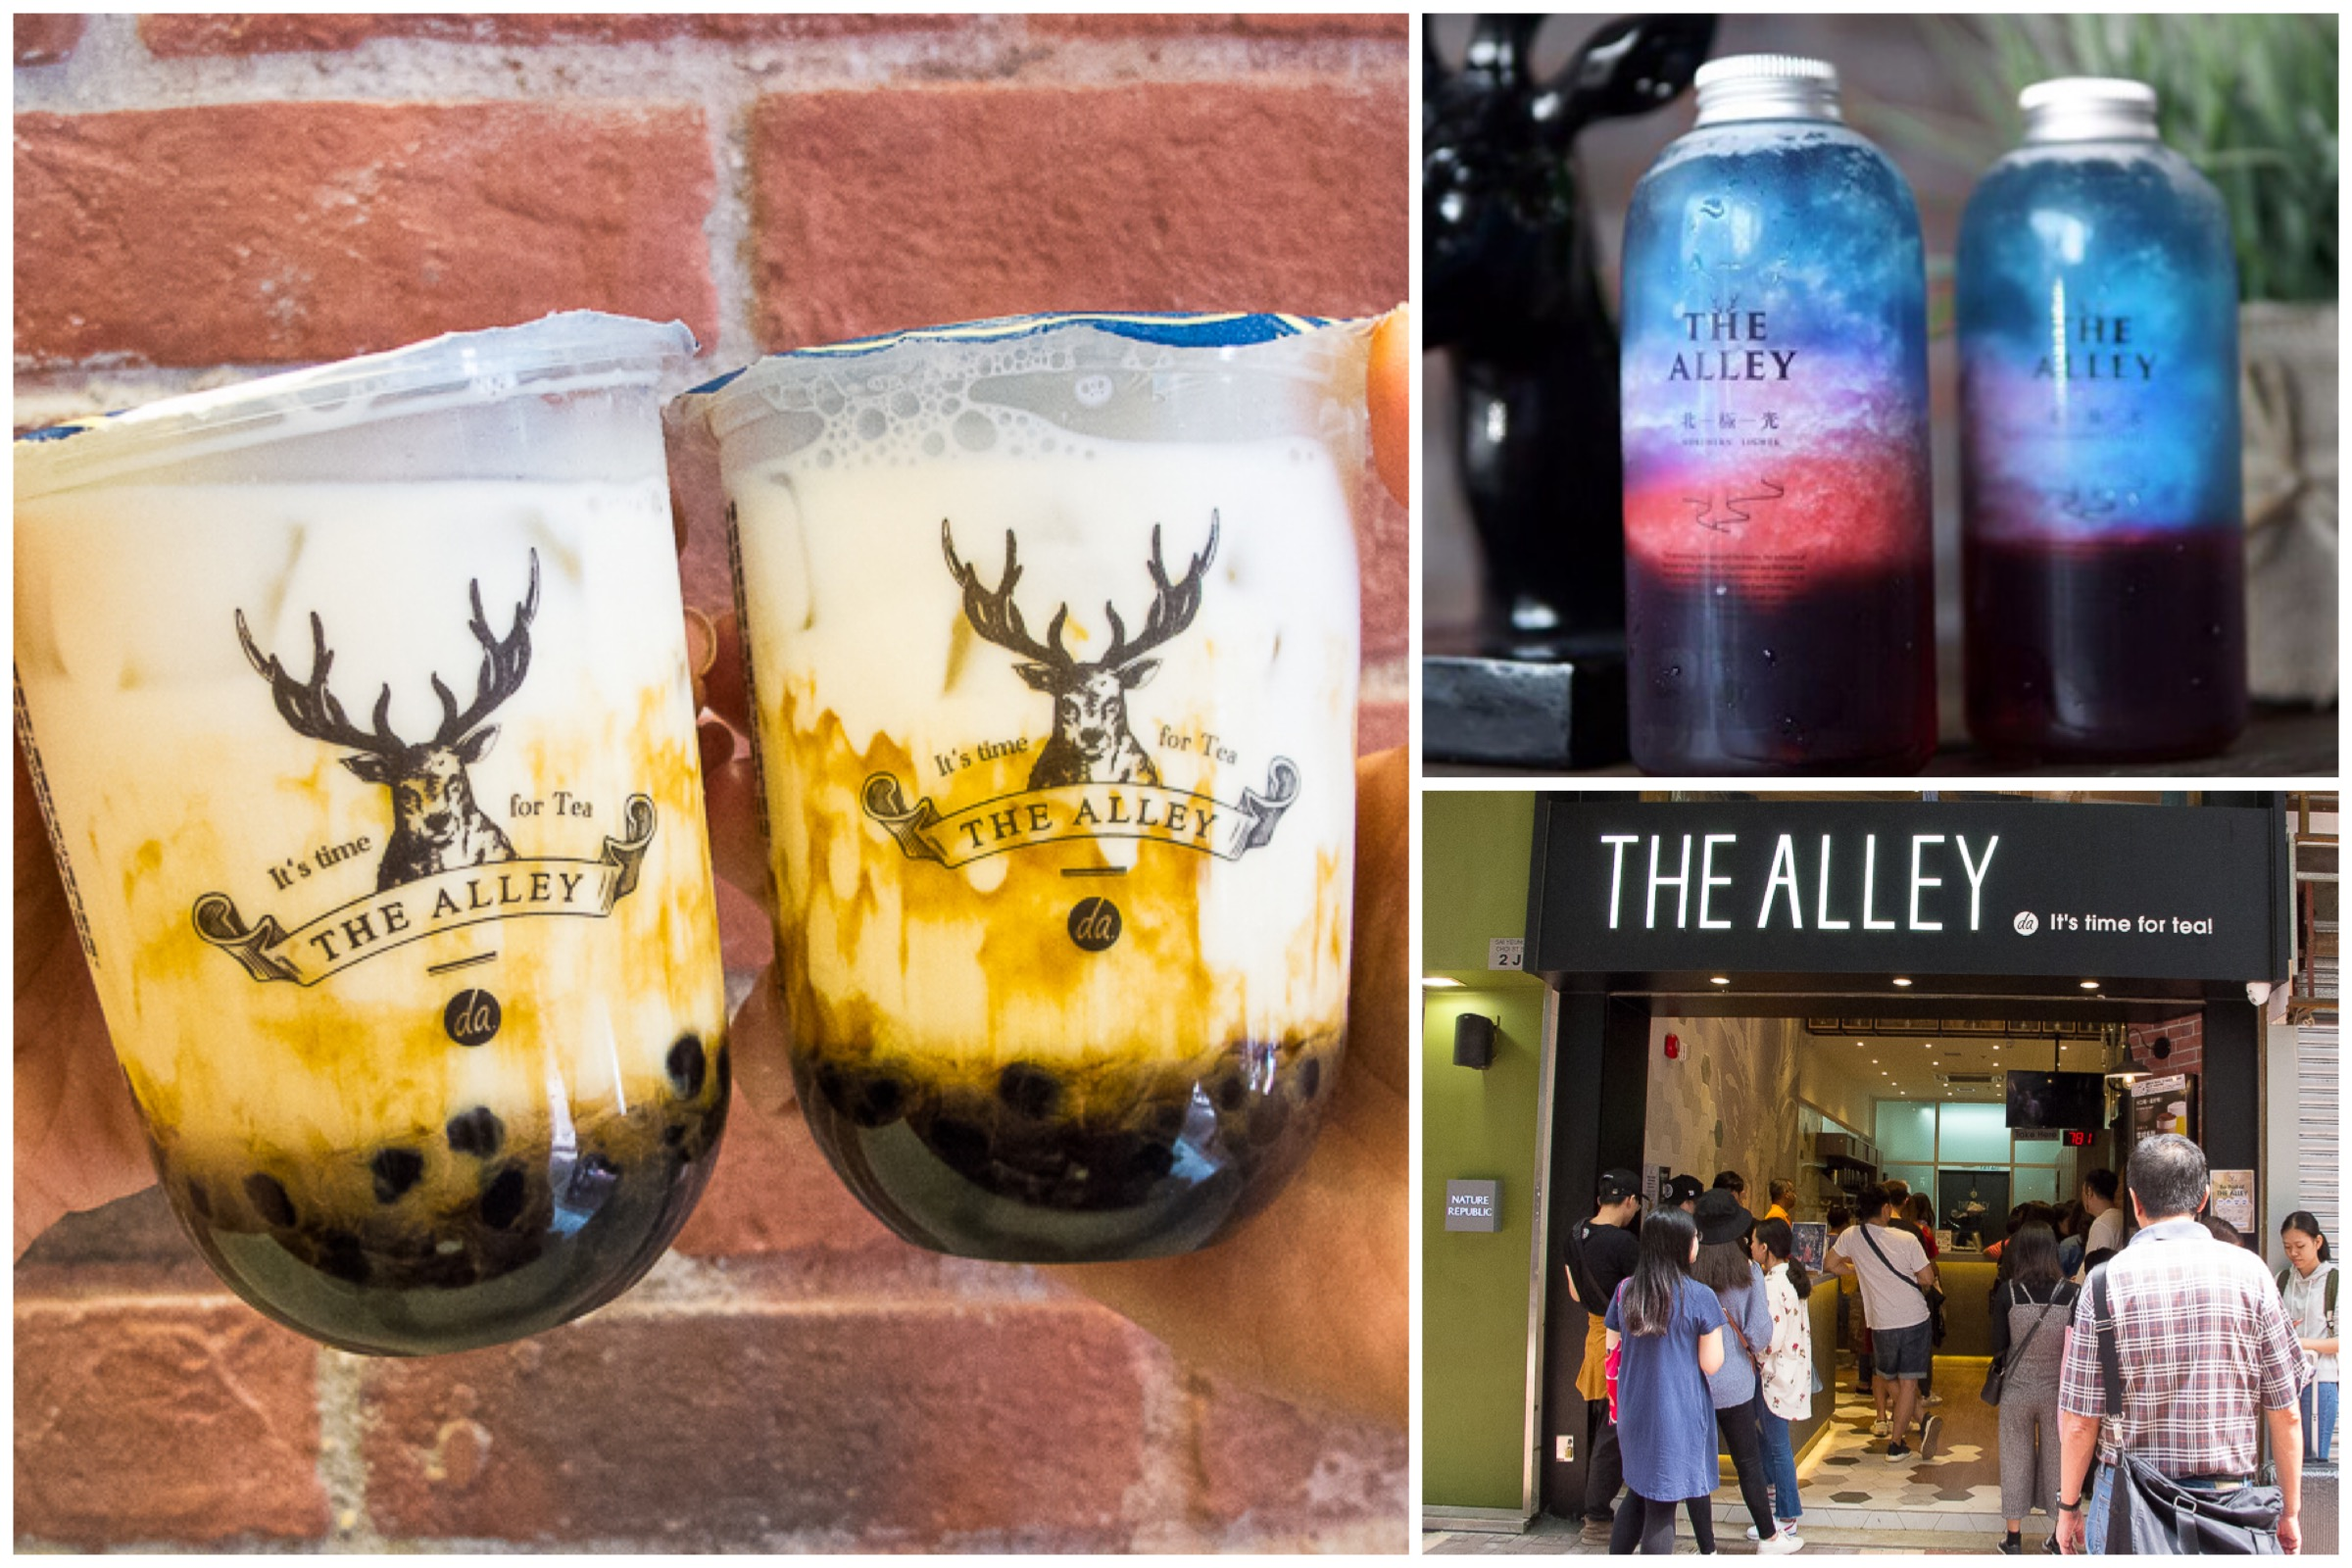 The Alley 鹿角巷 - Popular Bubble Tea Shop Known For Brown Sugar Milk & Aurora Drinks, At Tsim Sha Tsui And Mong Kok Hong Kong